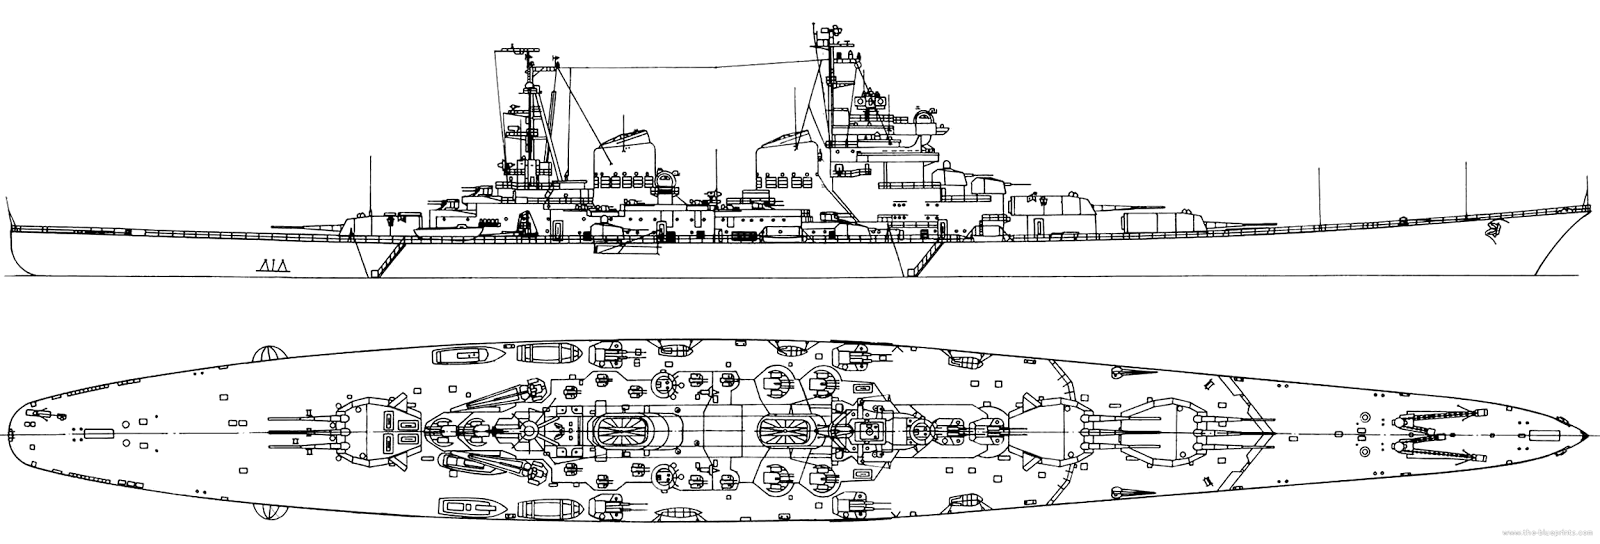 Naval Analyses: INFOGRAPHICS #16 and HISTORY #3: Battleships of WWII!